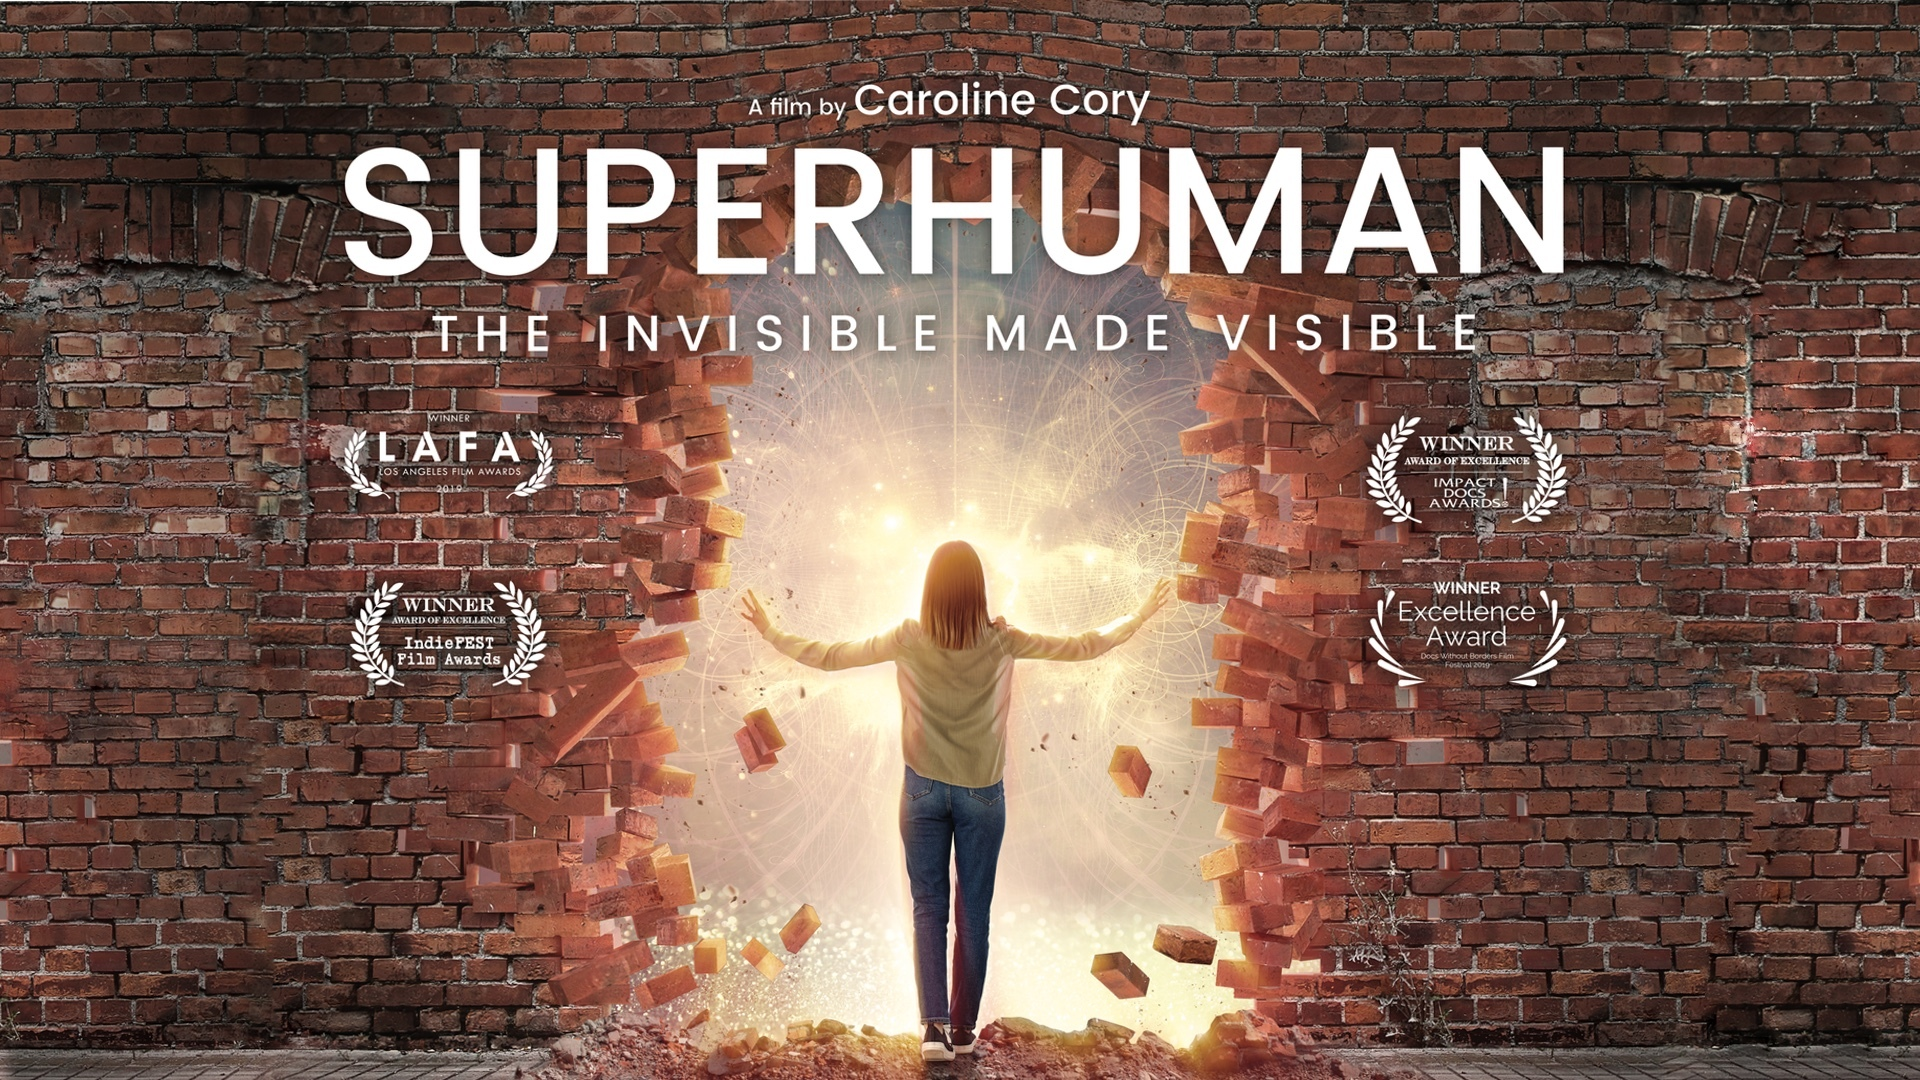 Caroline Cory's New Movie, Superhuman: The Invisible Made Visible